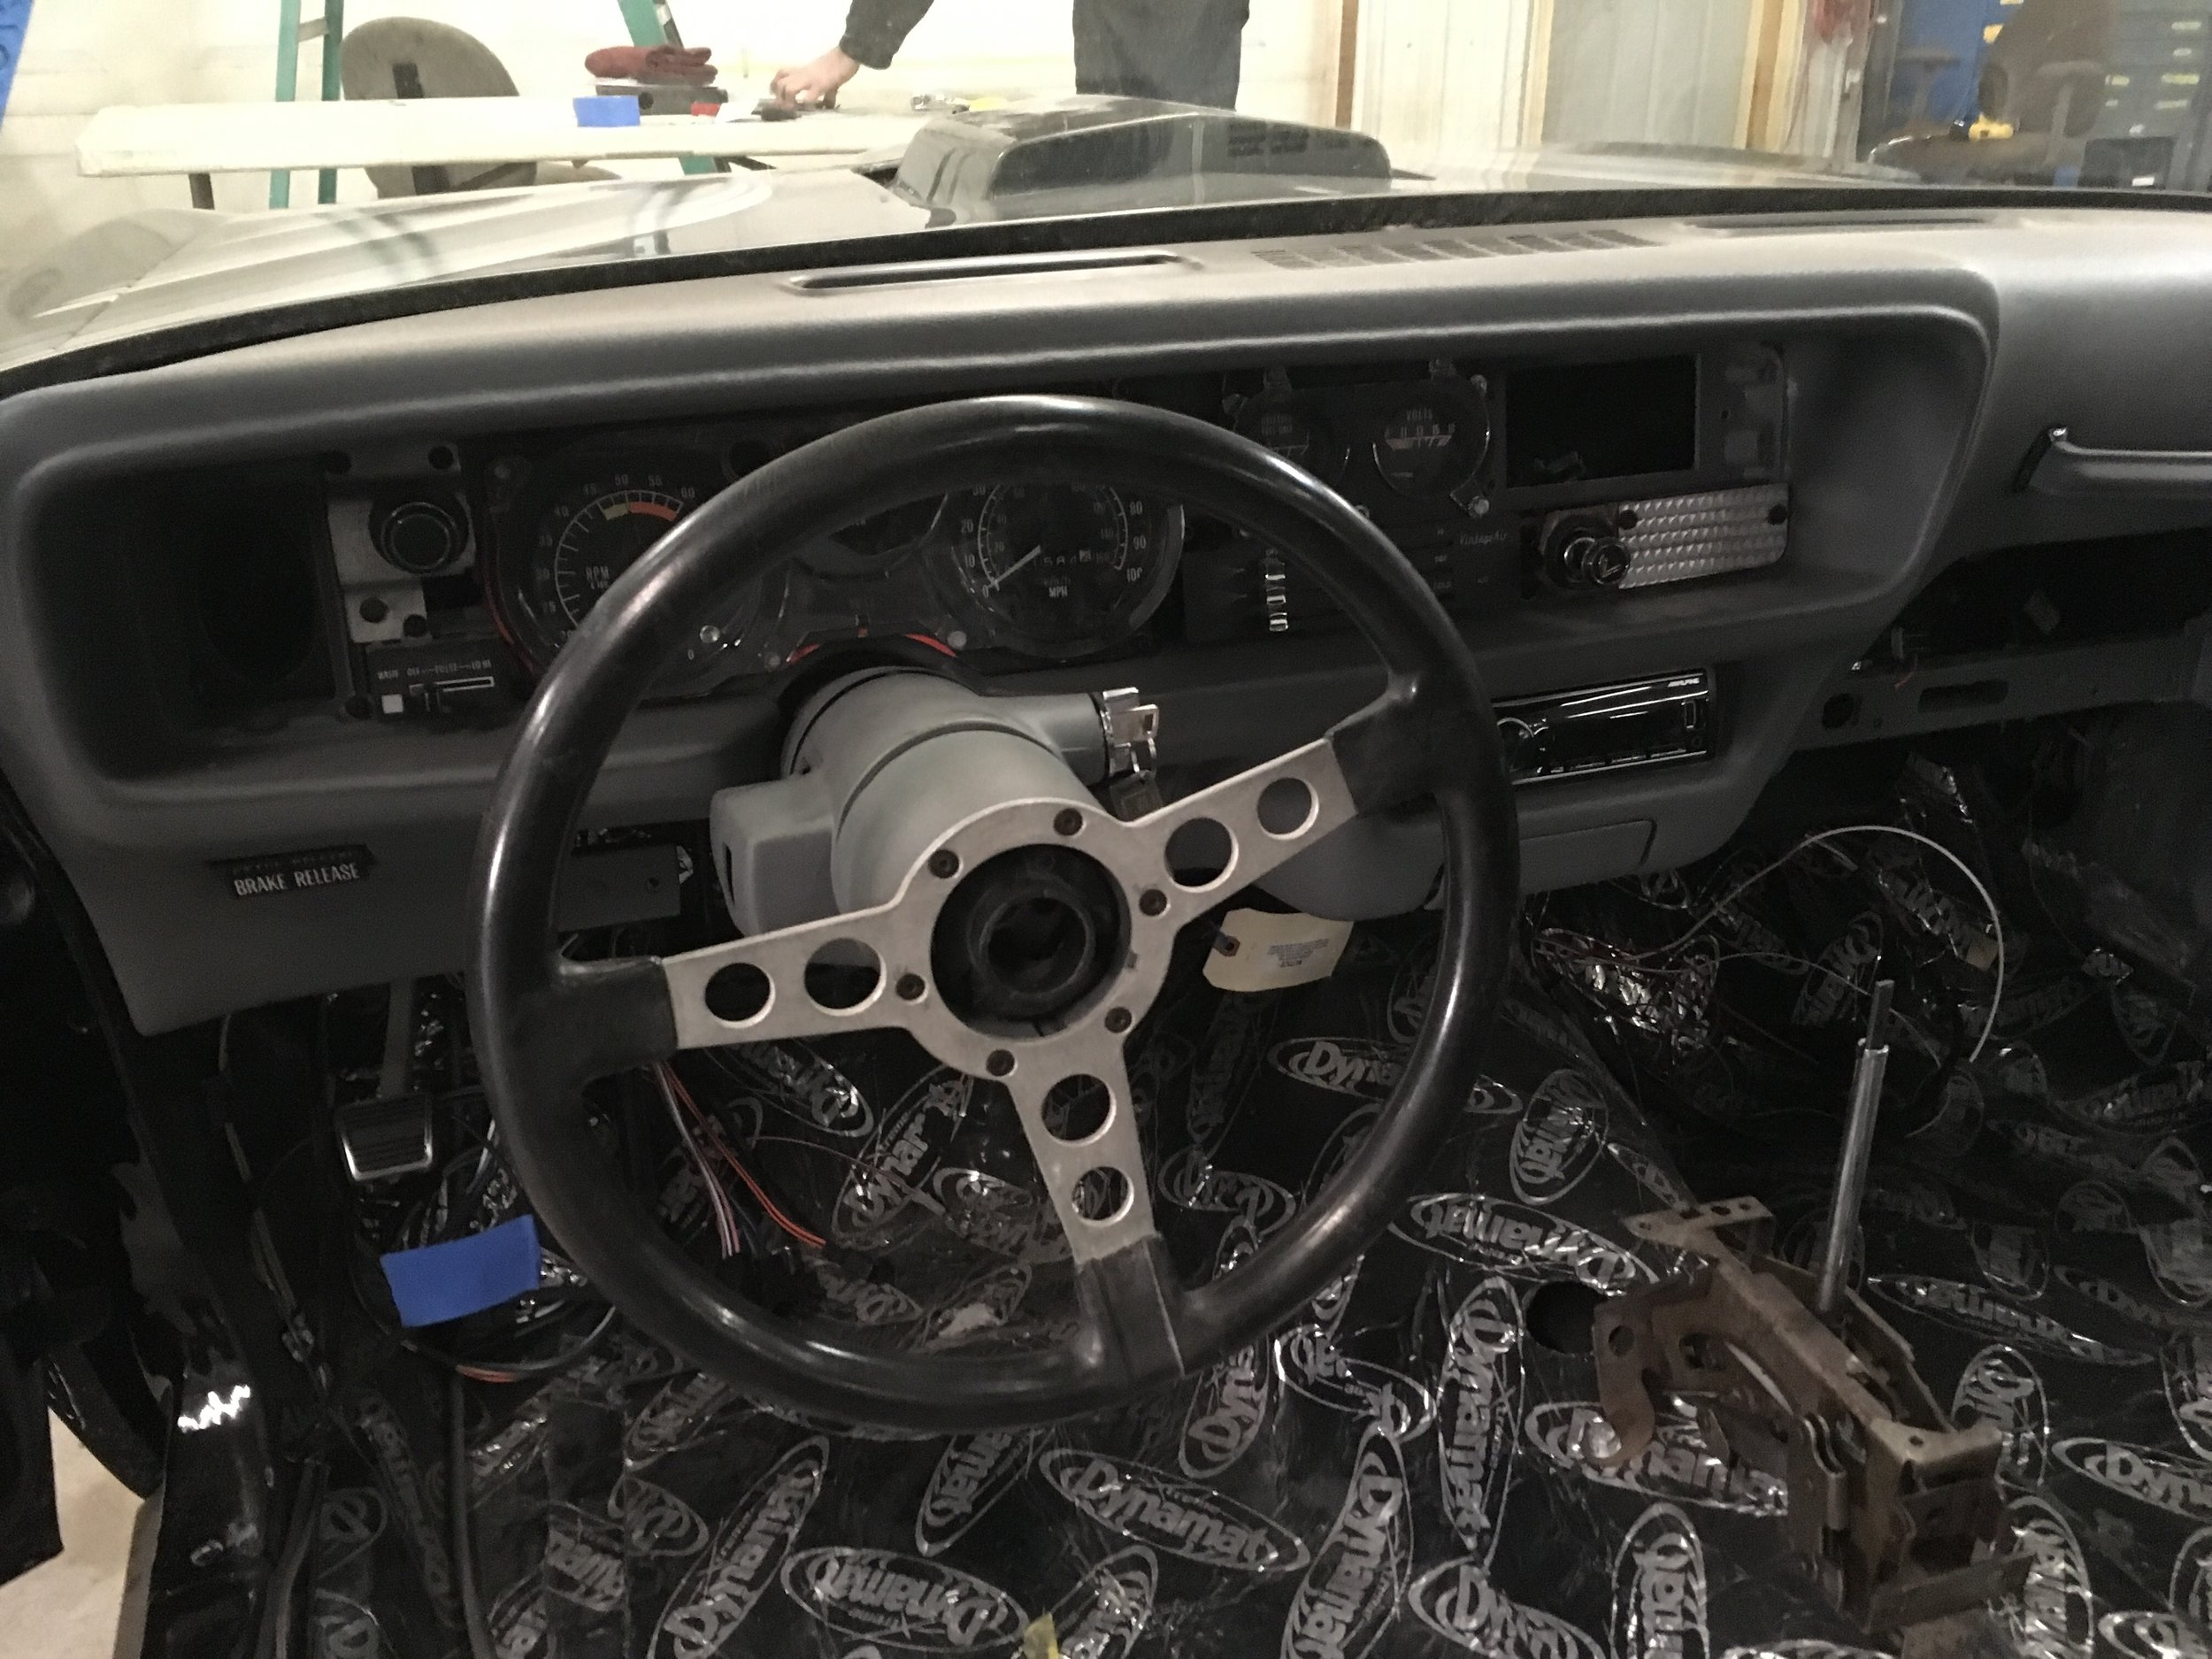 1979-Trans-Am-Minneapolis-Hot-Rod-Custom-Built-Restoration-steering-wheel.jpg